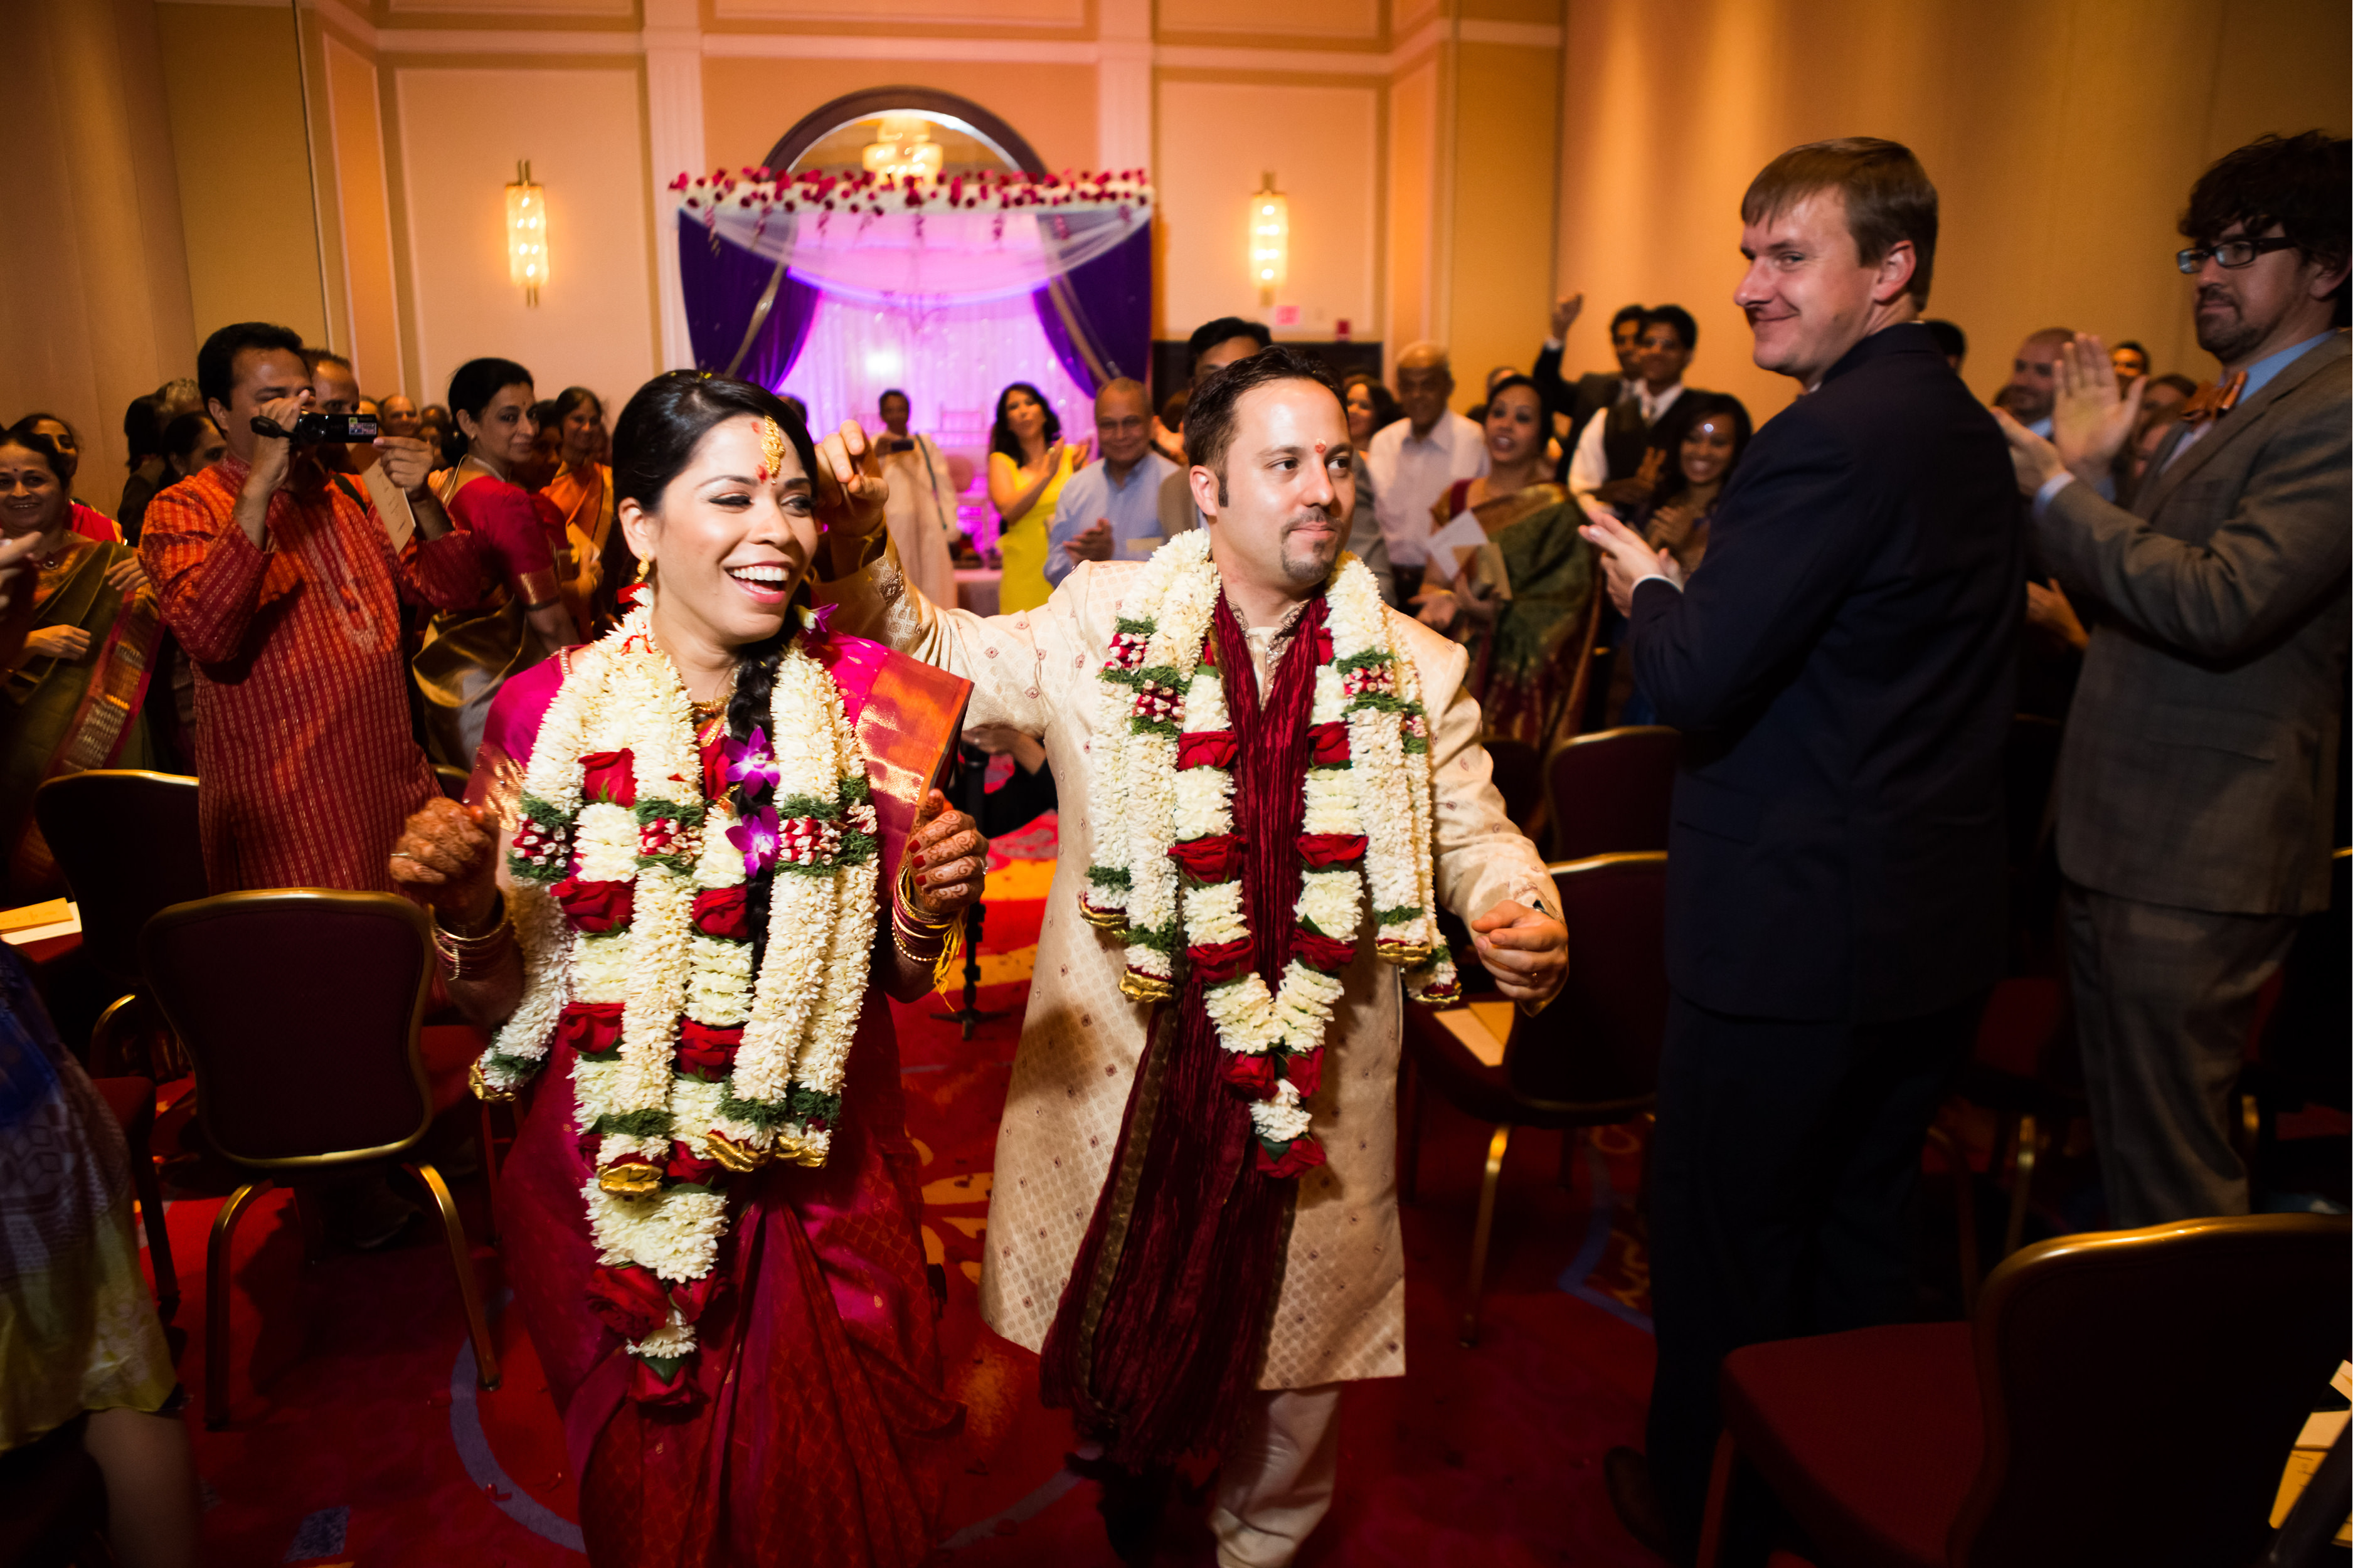 Emma_cleary_photography Indian Wedding21